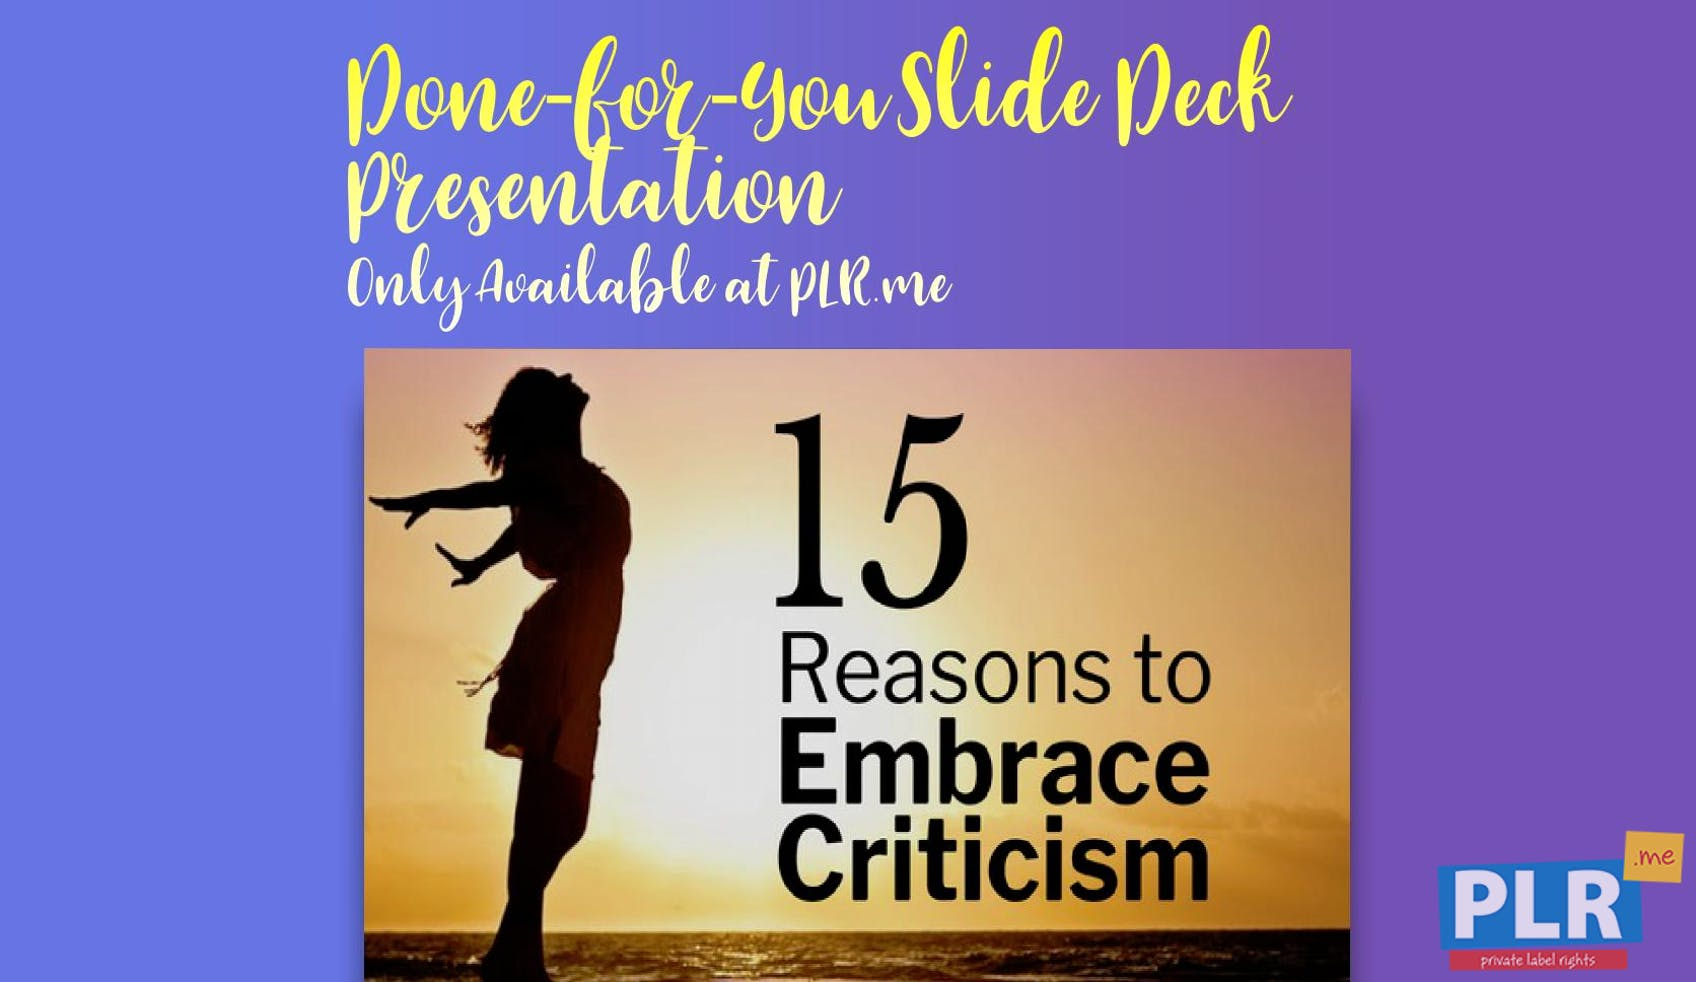 15 Reasons To Embrace Criticism Slide Deck